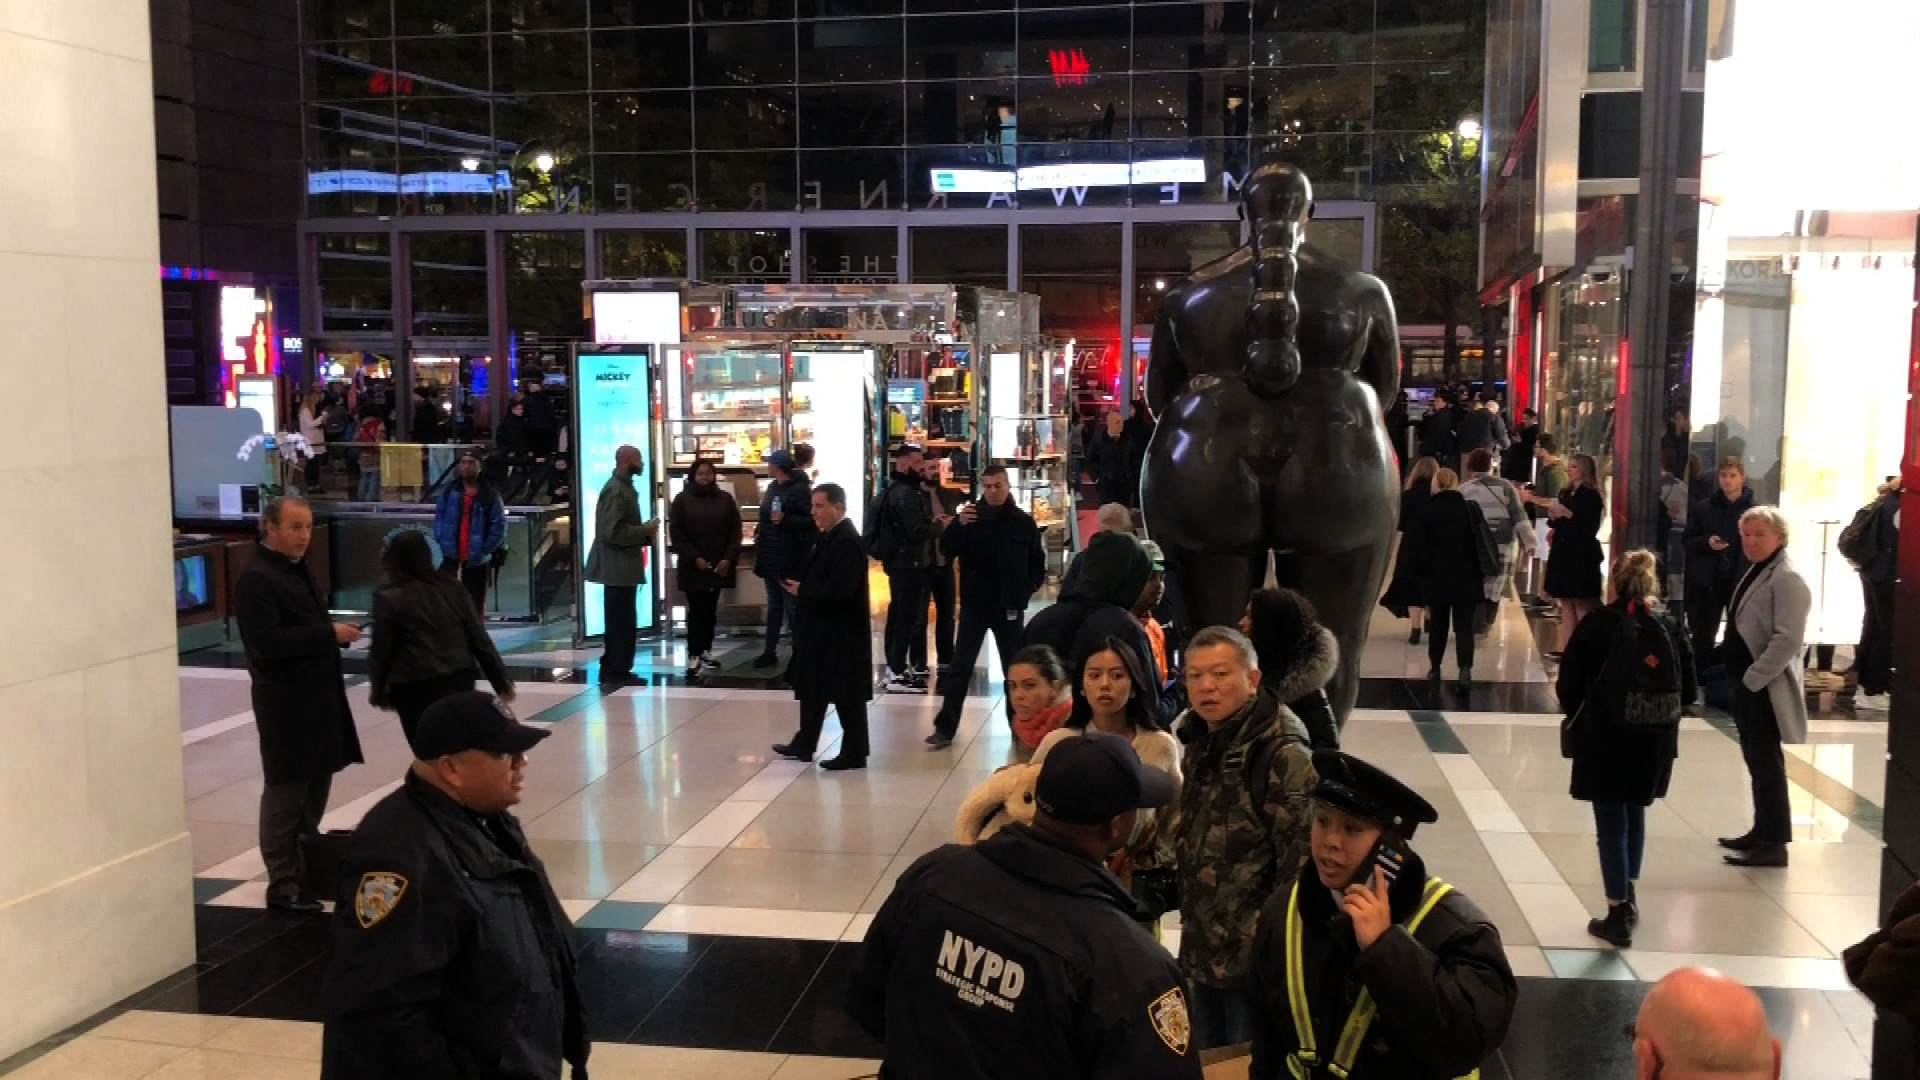 Bag Shops Nypd Responding To Report Of Unattended Bag